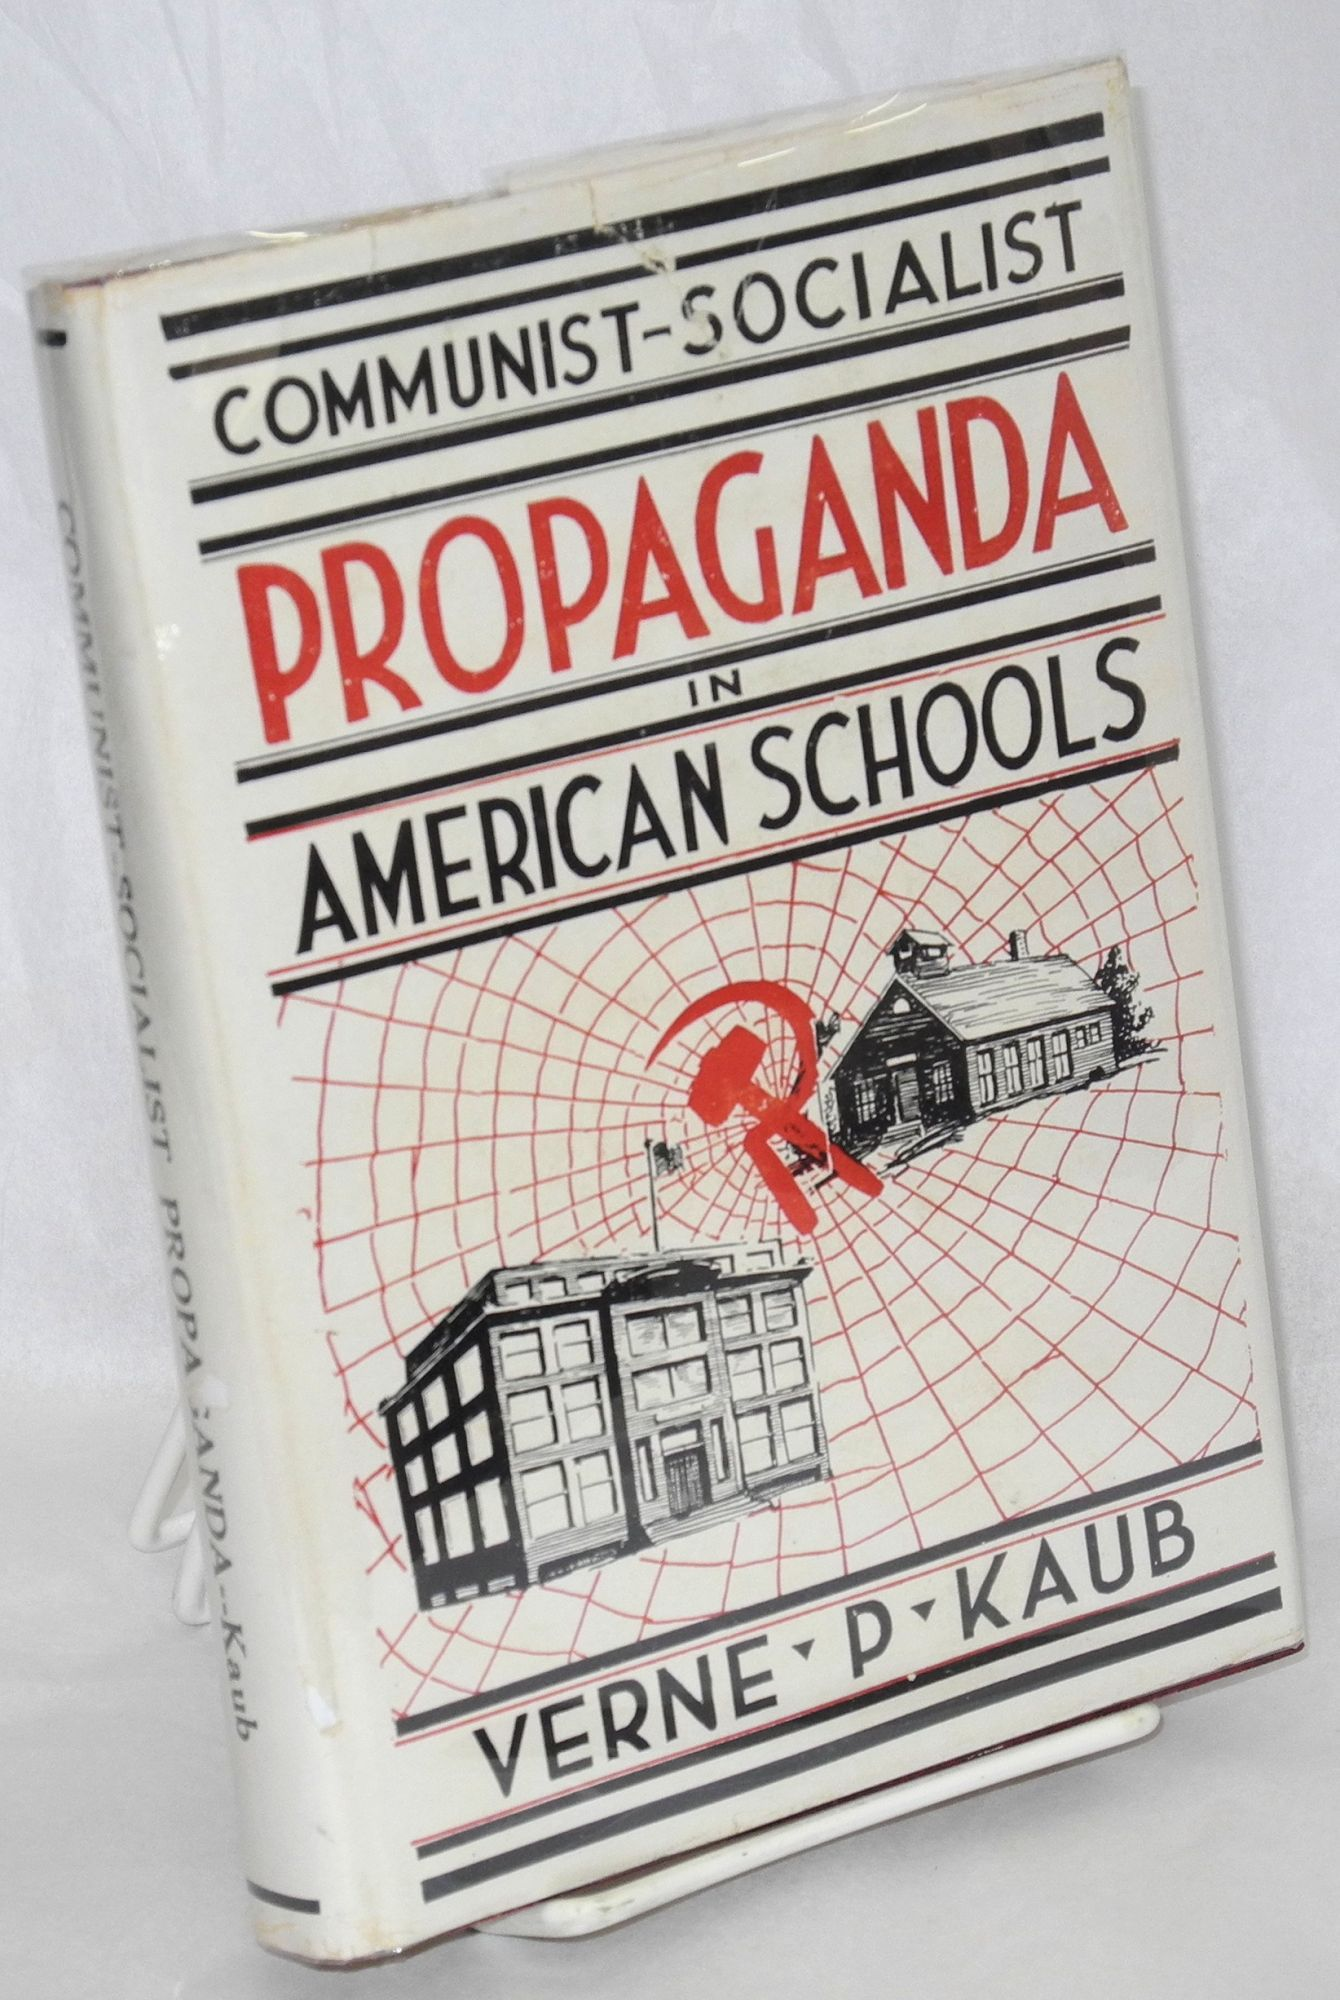 communism in the american system of education Visible contributions were public fallout shelters and the emergency broadcast  system educational films such as this one were popular in the 1950s  it was  first screened on january 7, 1952, as part of the alert america civil defense   communism duck and cover education educational films nuclear arms red  scare.